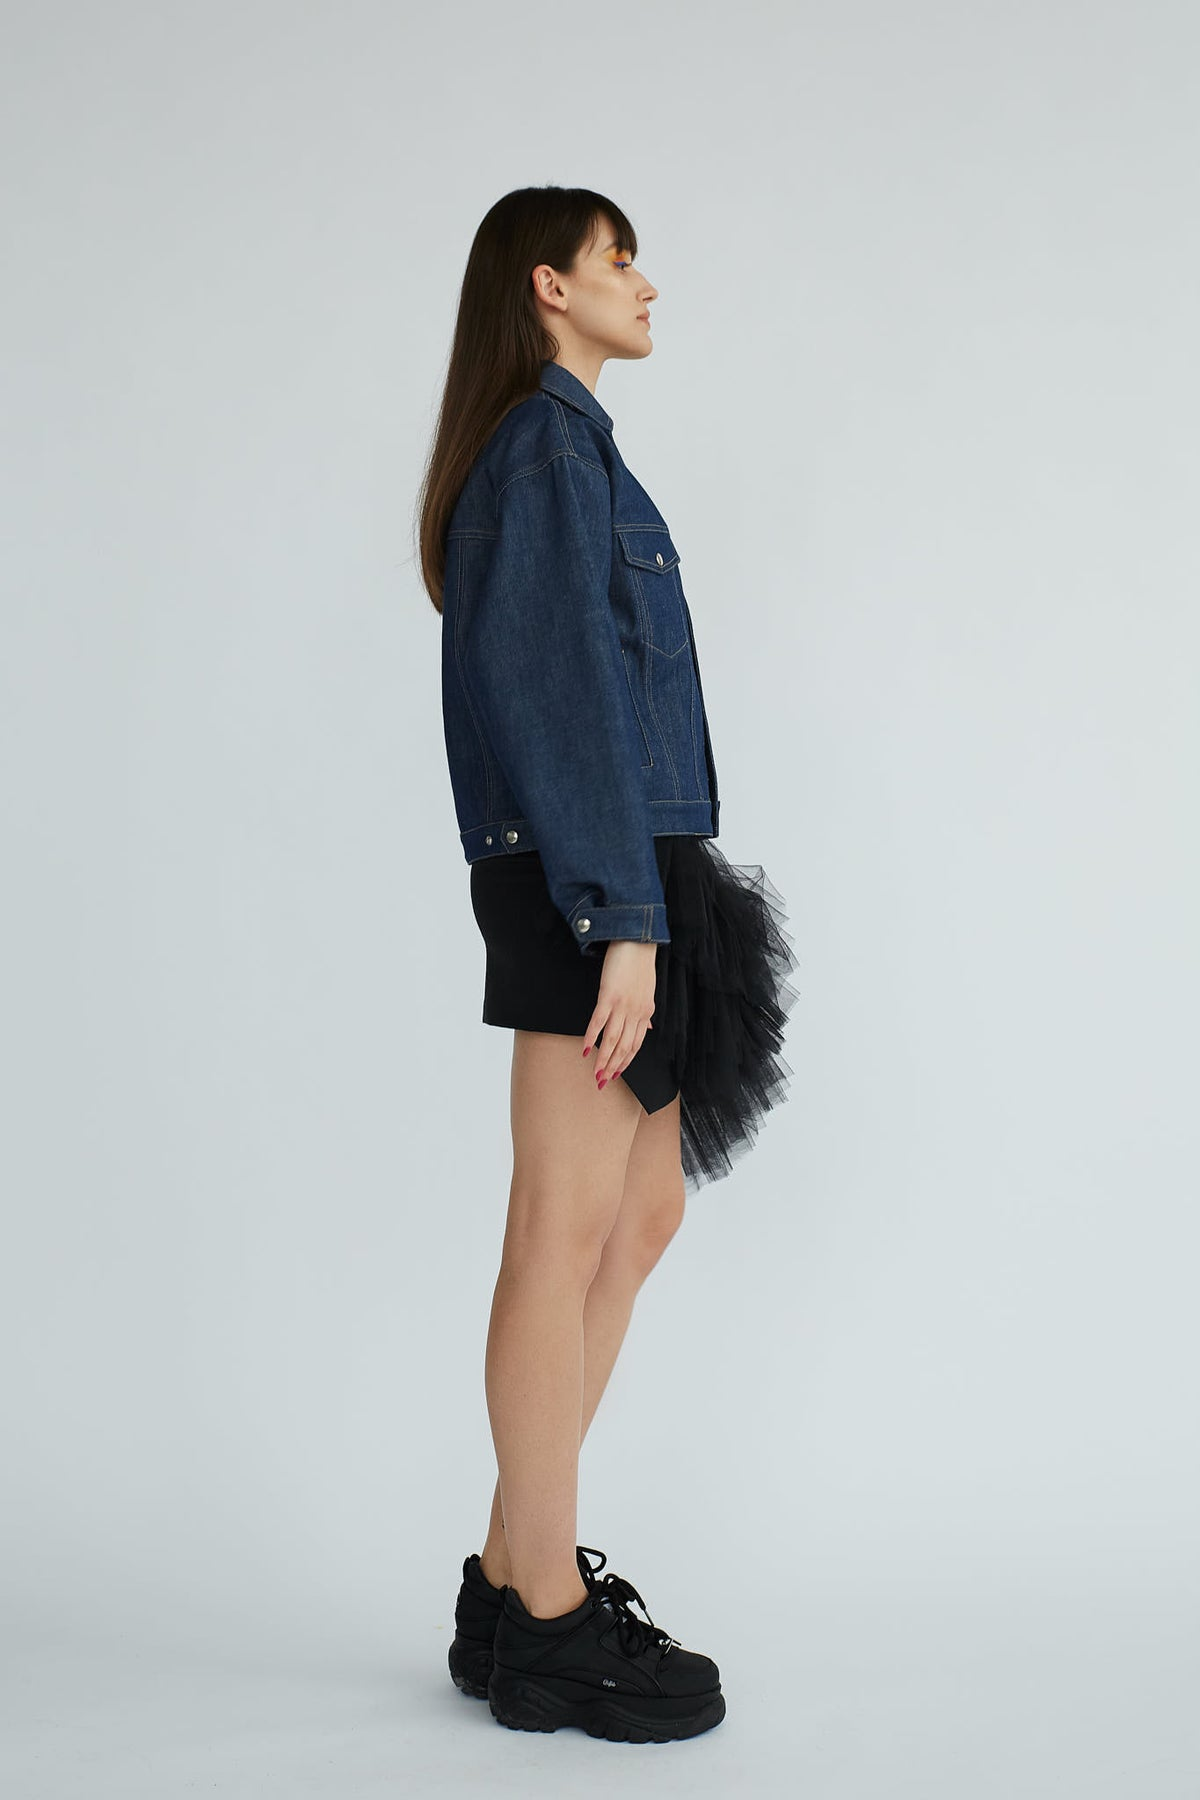 Genes-Blue-Denim-Jacket-With-Attachable-Grey-Fox-Fur-Collar.jpg